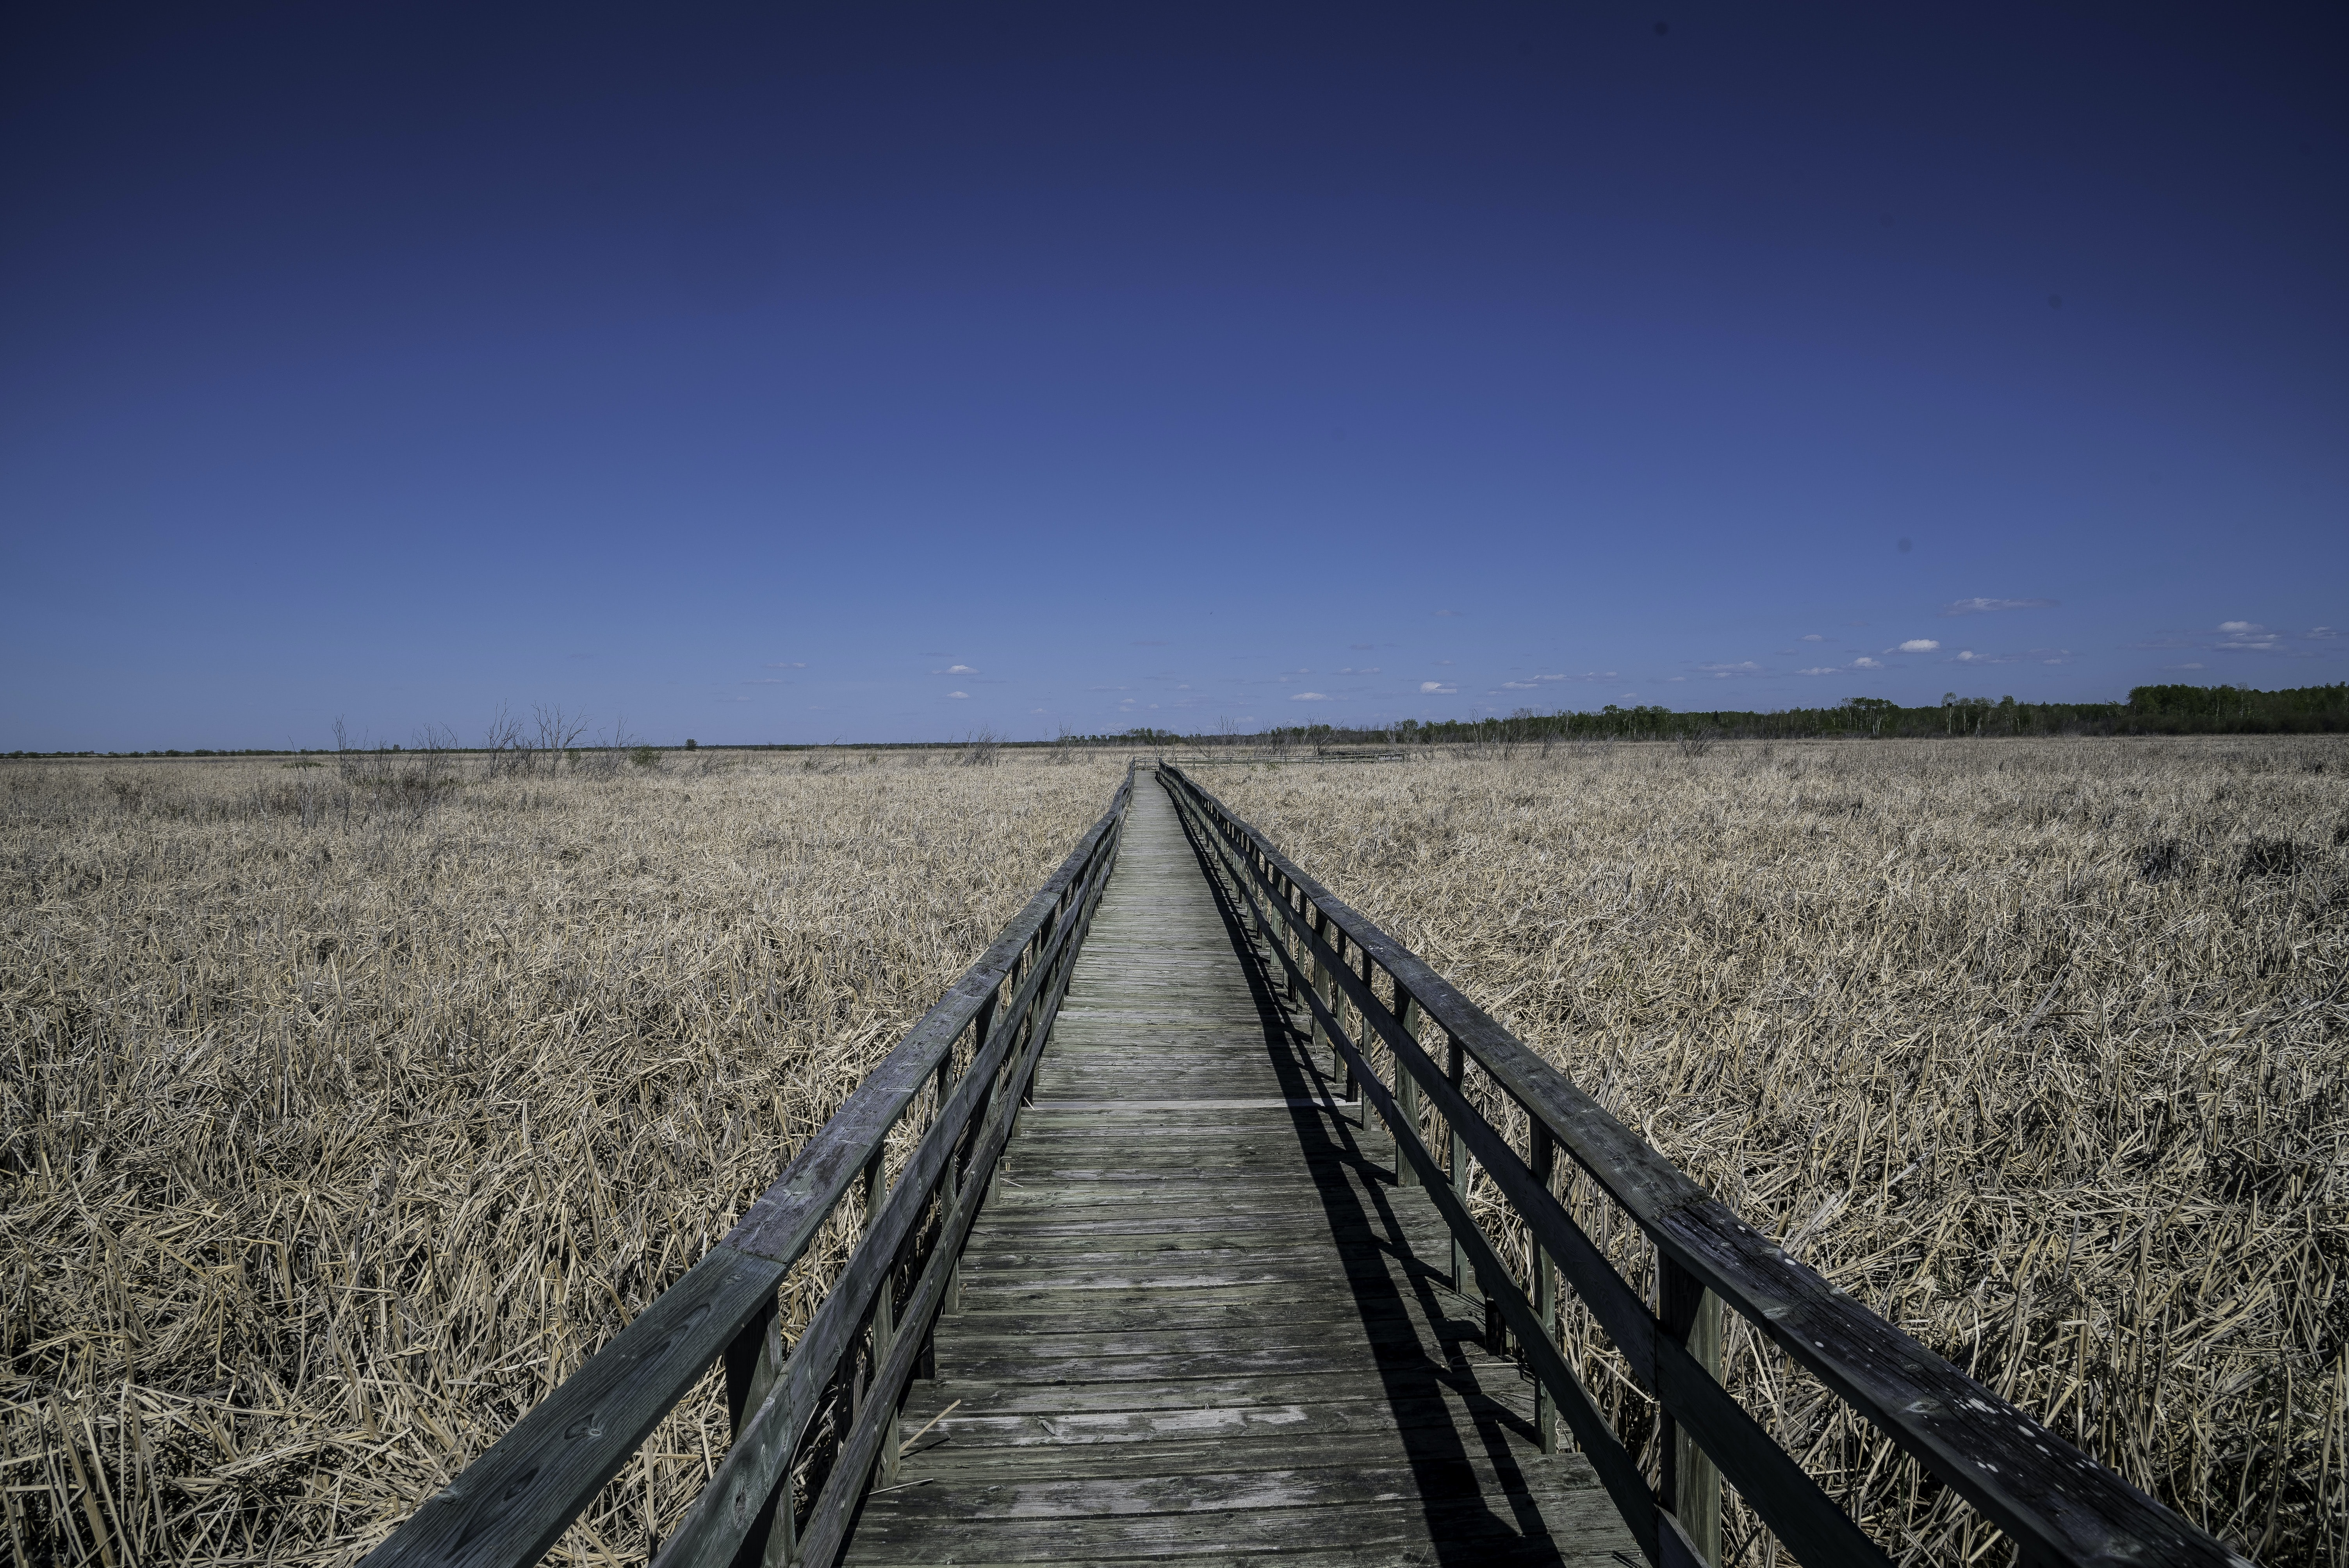 gray wooden pathway with rails between grass field